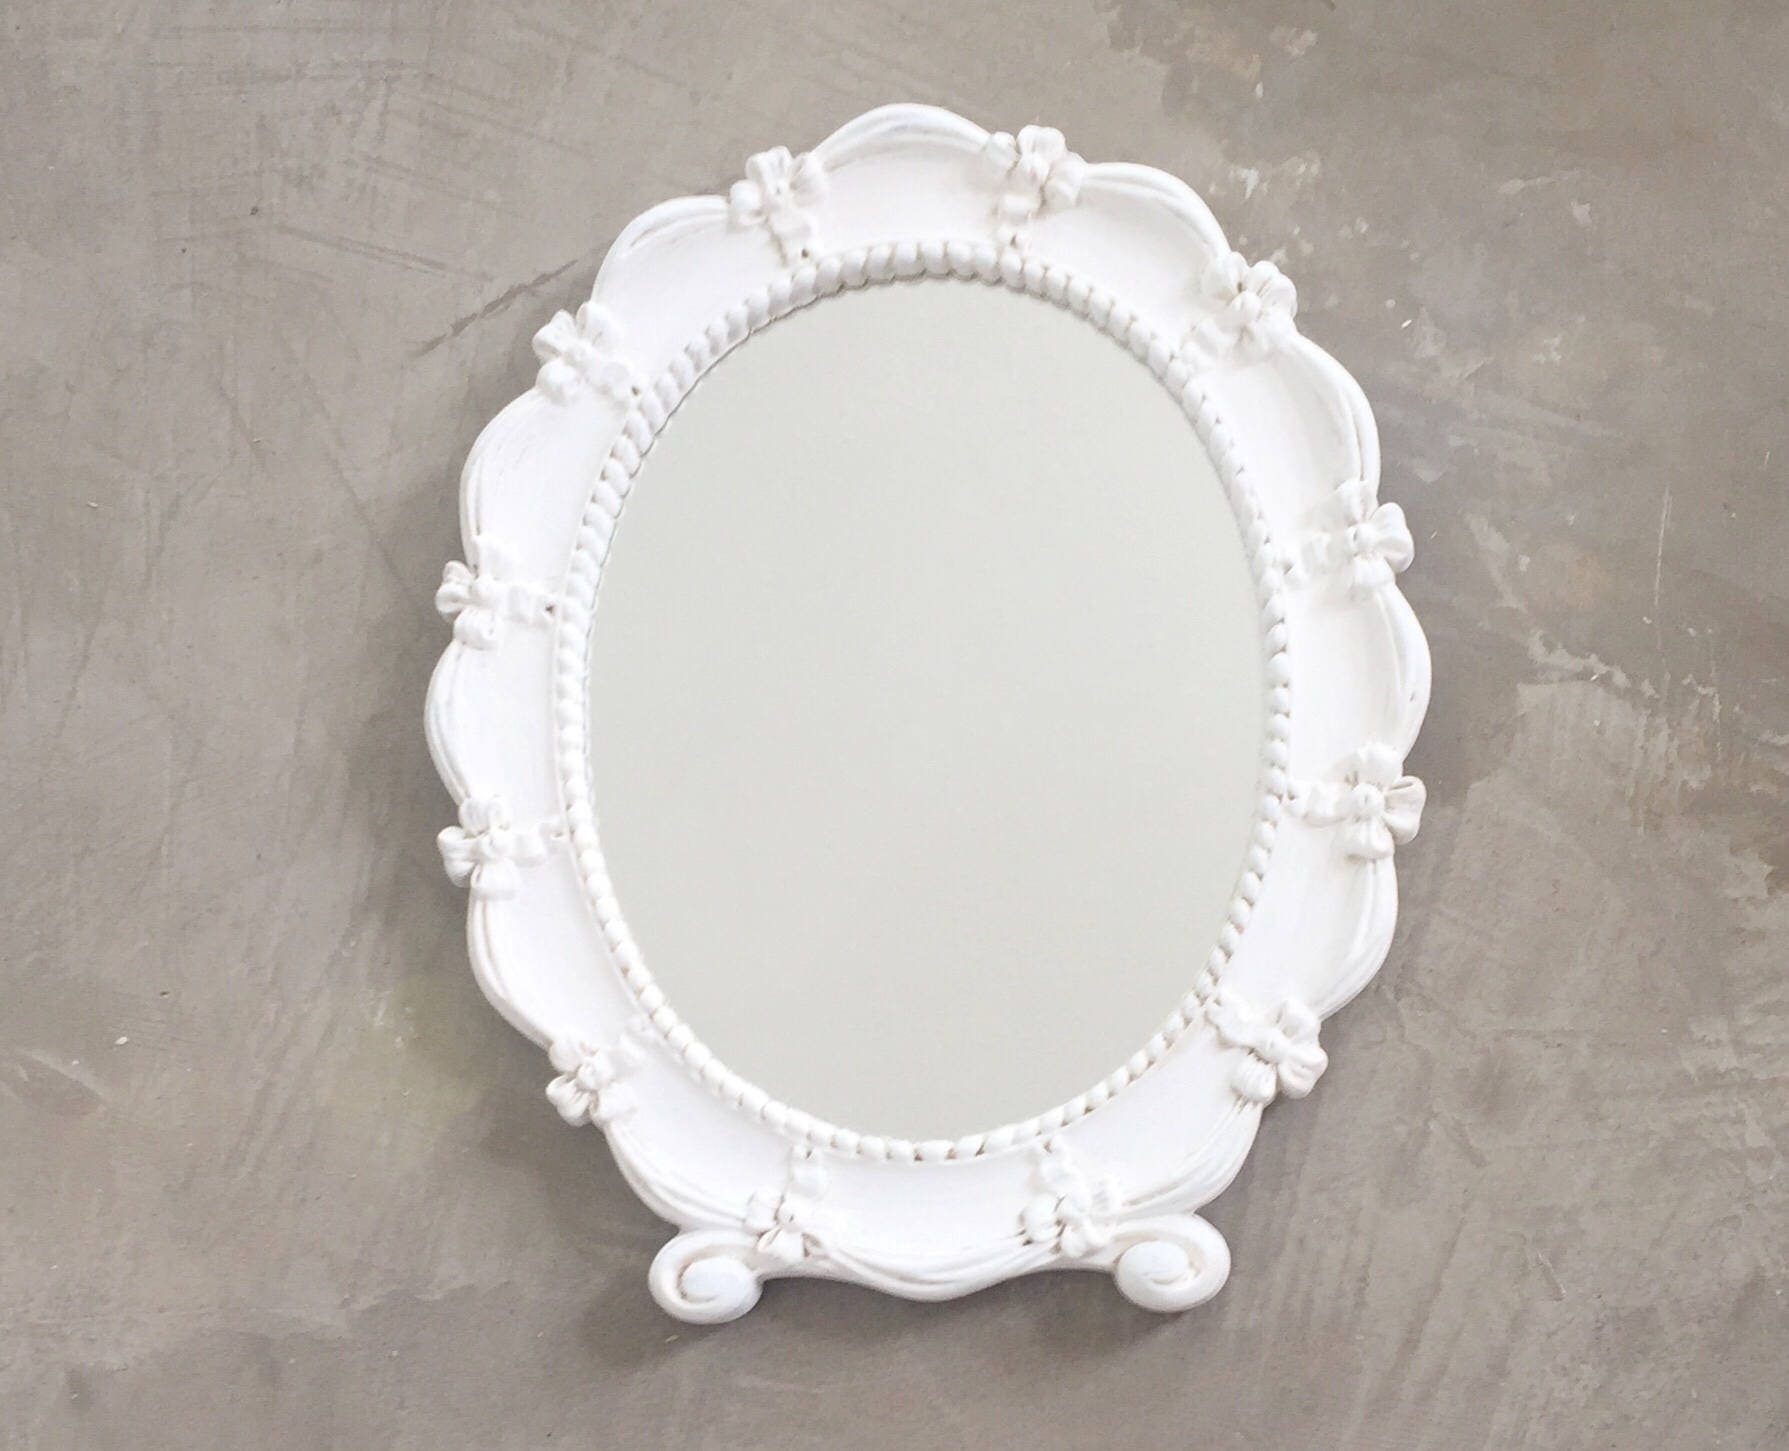 shabby chic blanc vintage miroir miroir syroco vintage. Black Bedroom Furniture Sets. Home Design Ideas